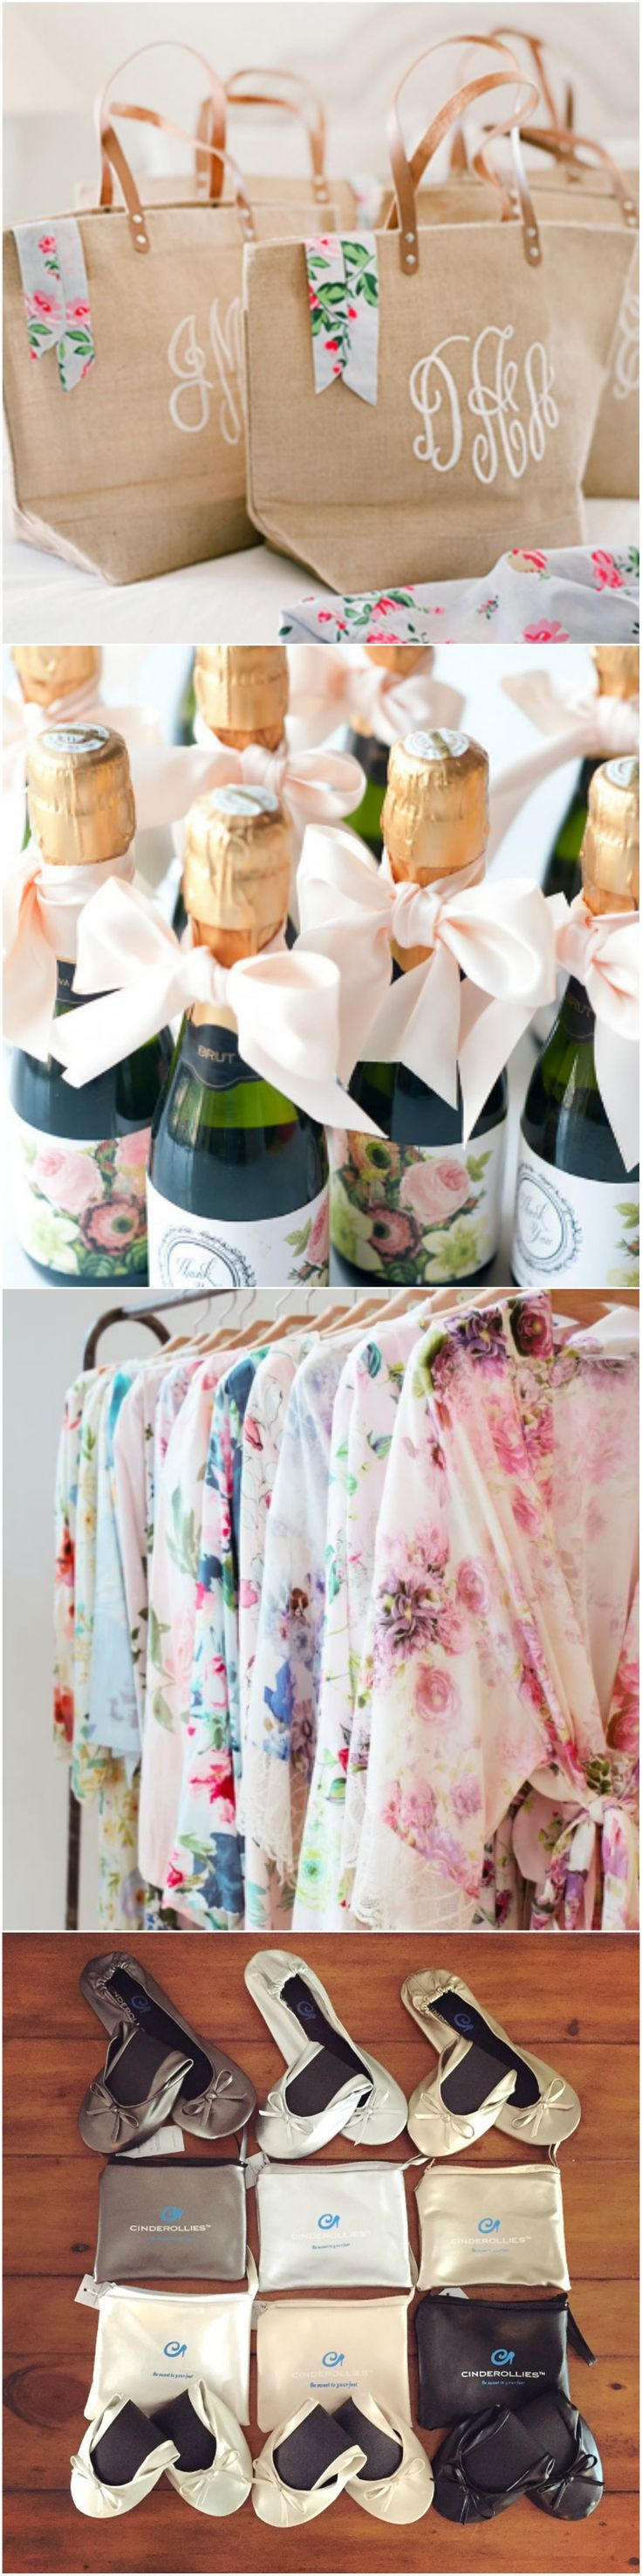 The perfect items to stuff in your bridesmaid gift bags found here!